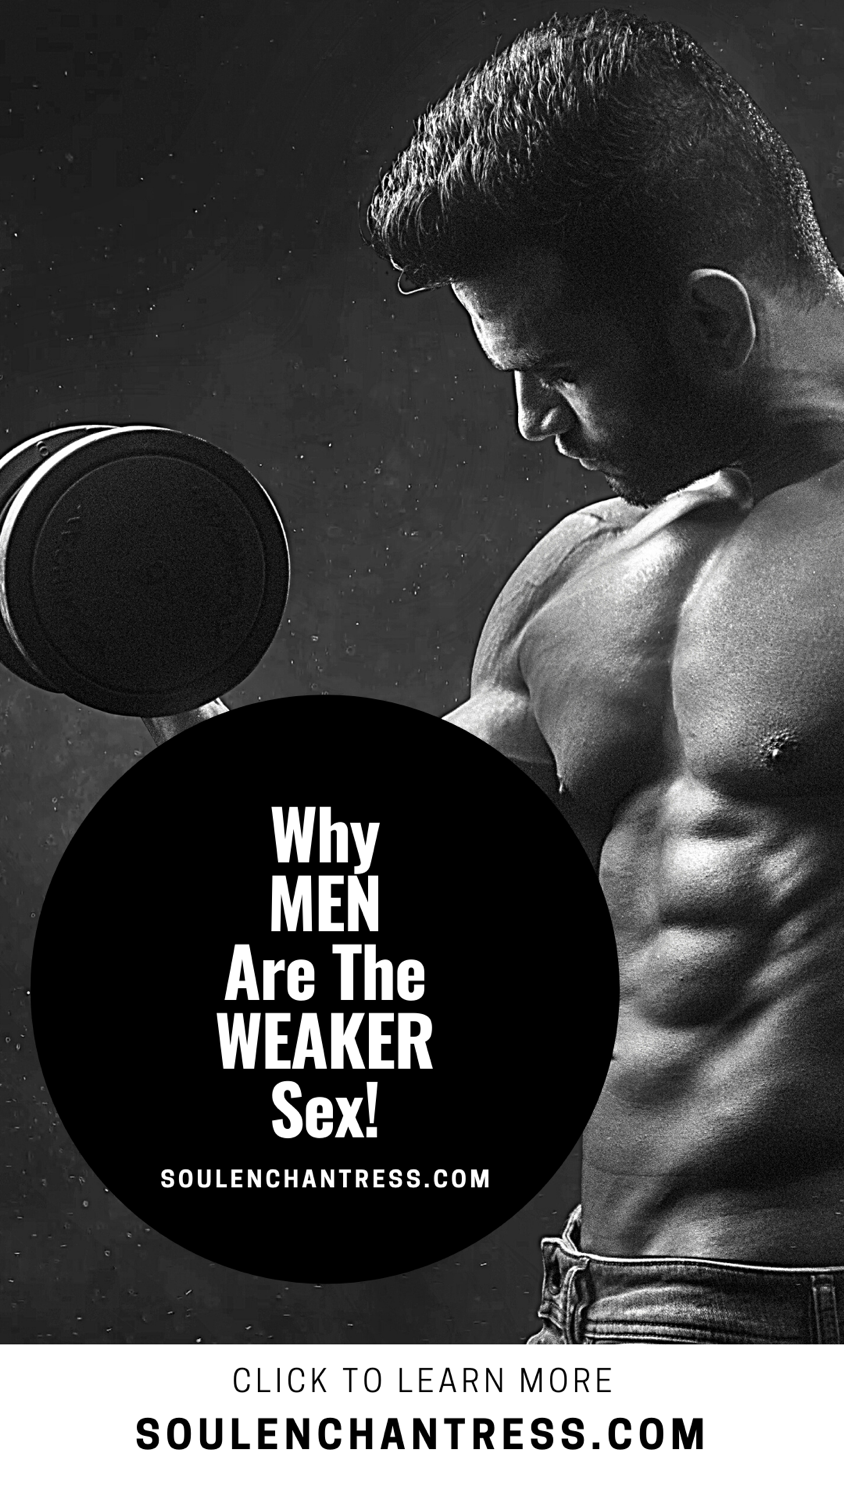 why men are the weaker sex, soulenchantress.com